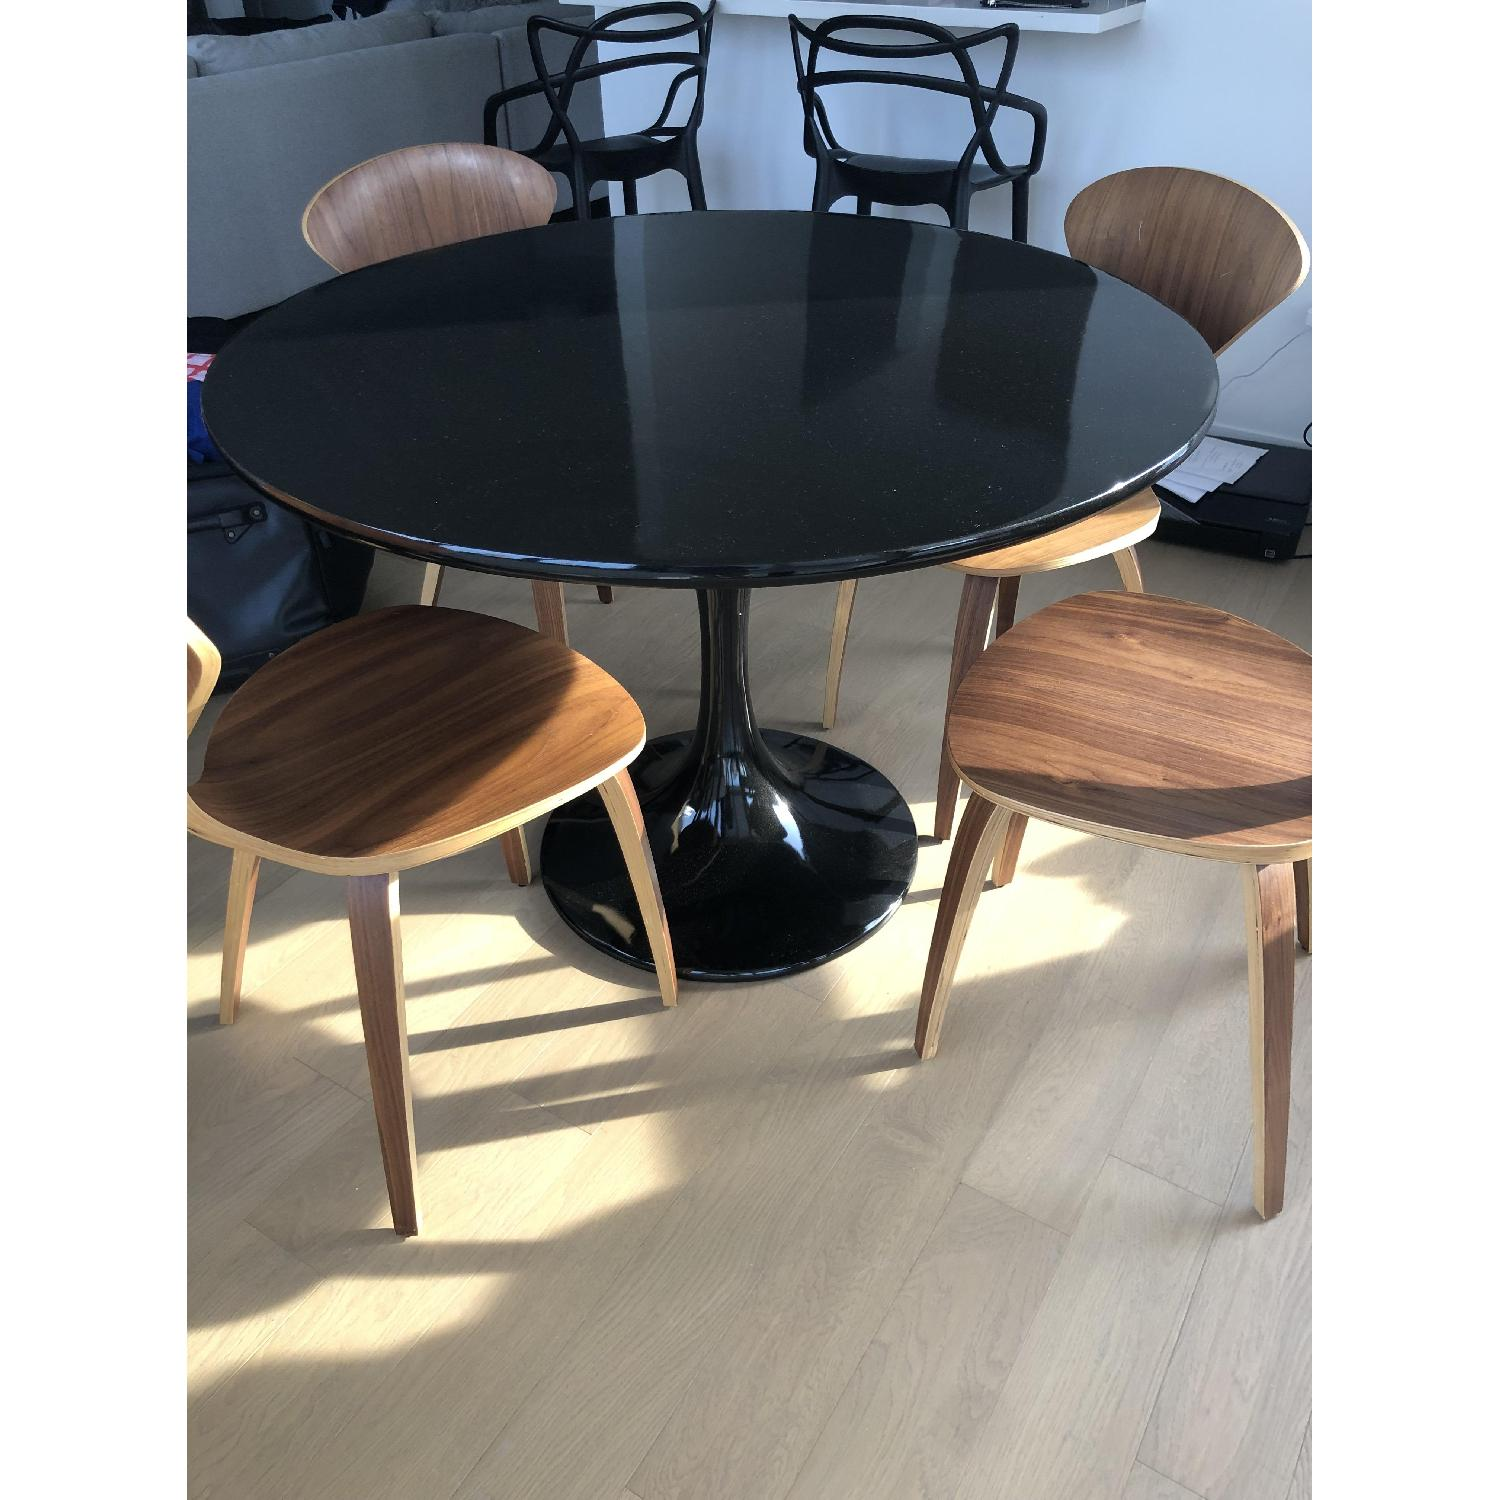 Fine Mod Imports Dining Table - image-4